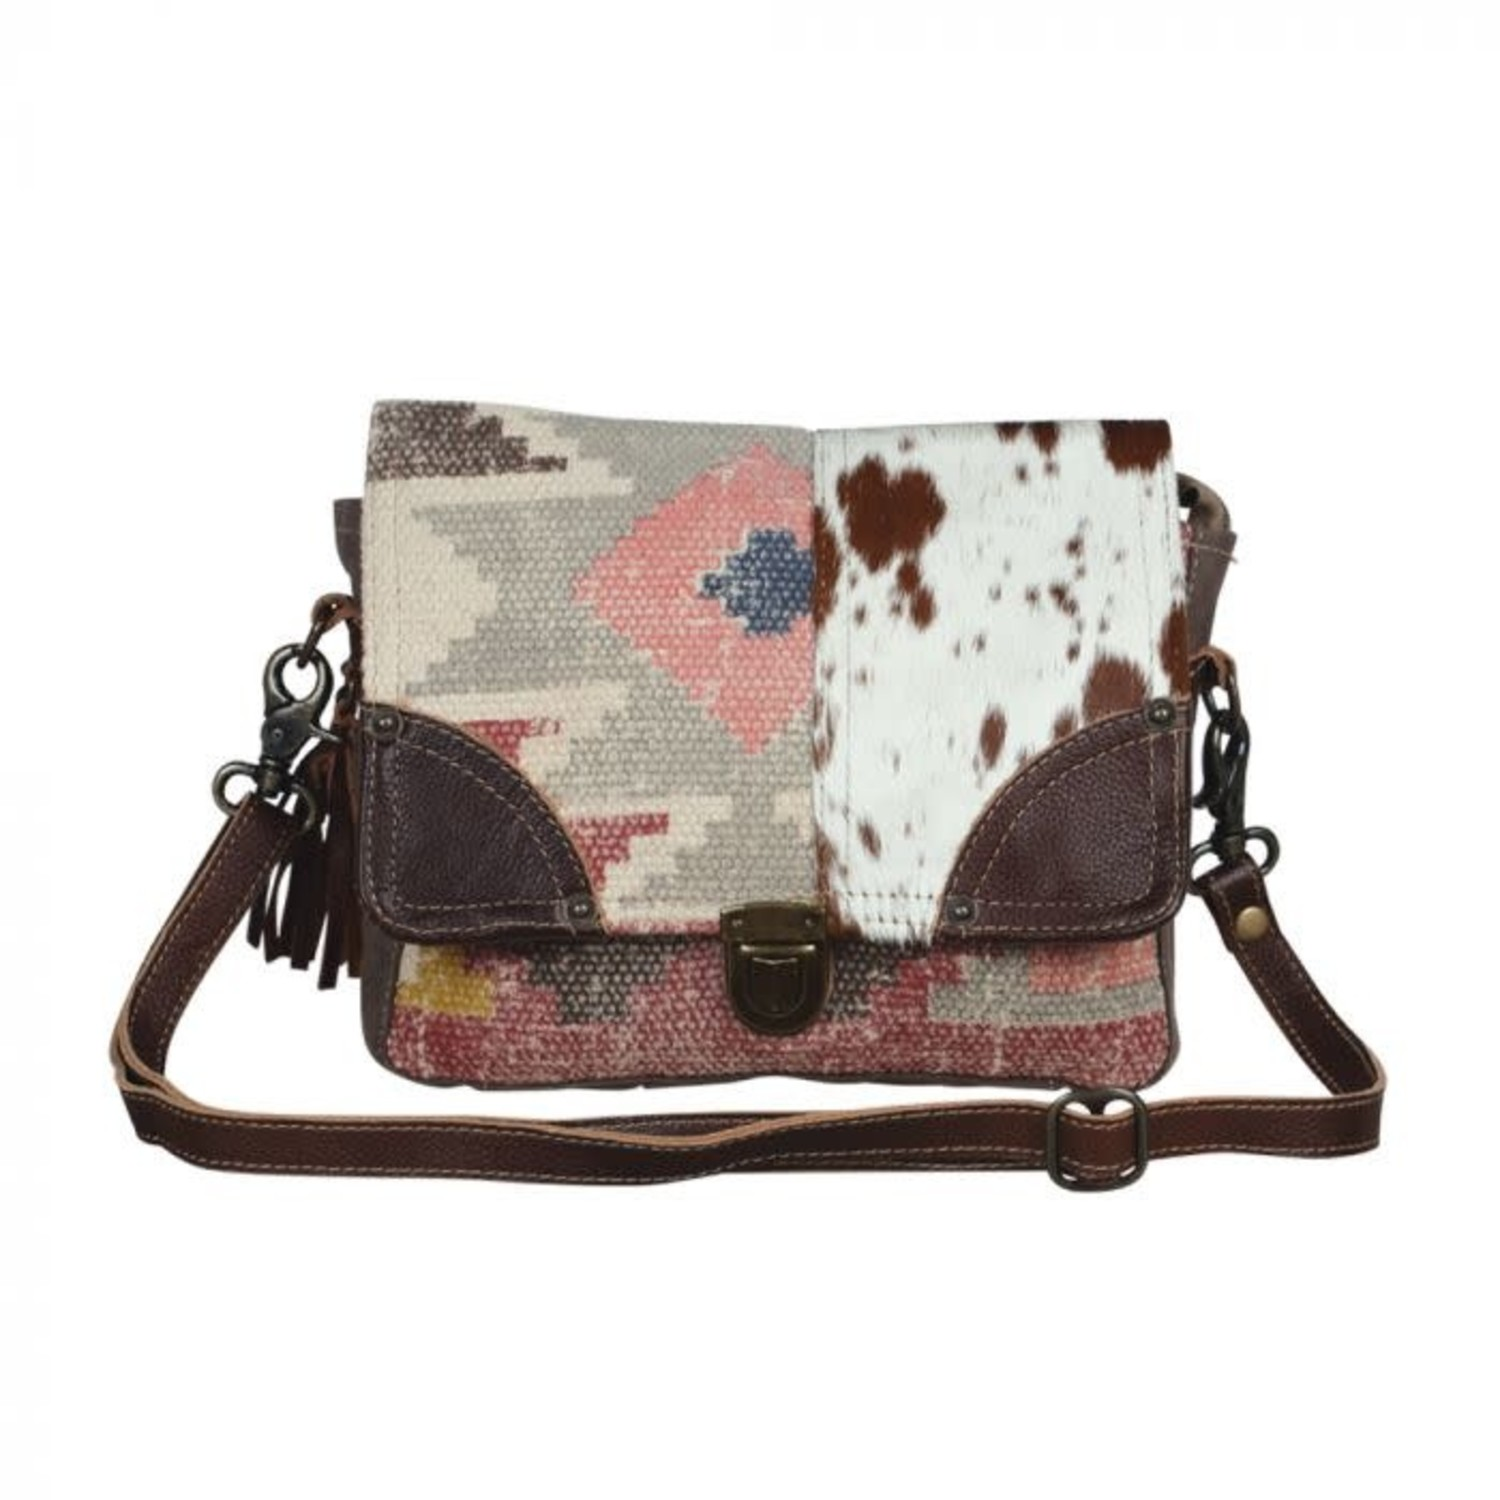 Myra 2066 Fuse In Messenger Bag Society Boutique Are you looking for a bag made from upcycled materials with a vintage look and feel? society boutique